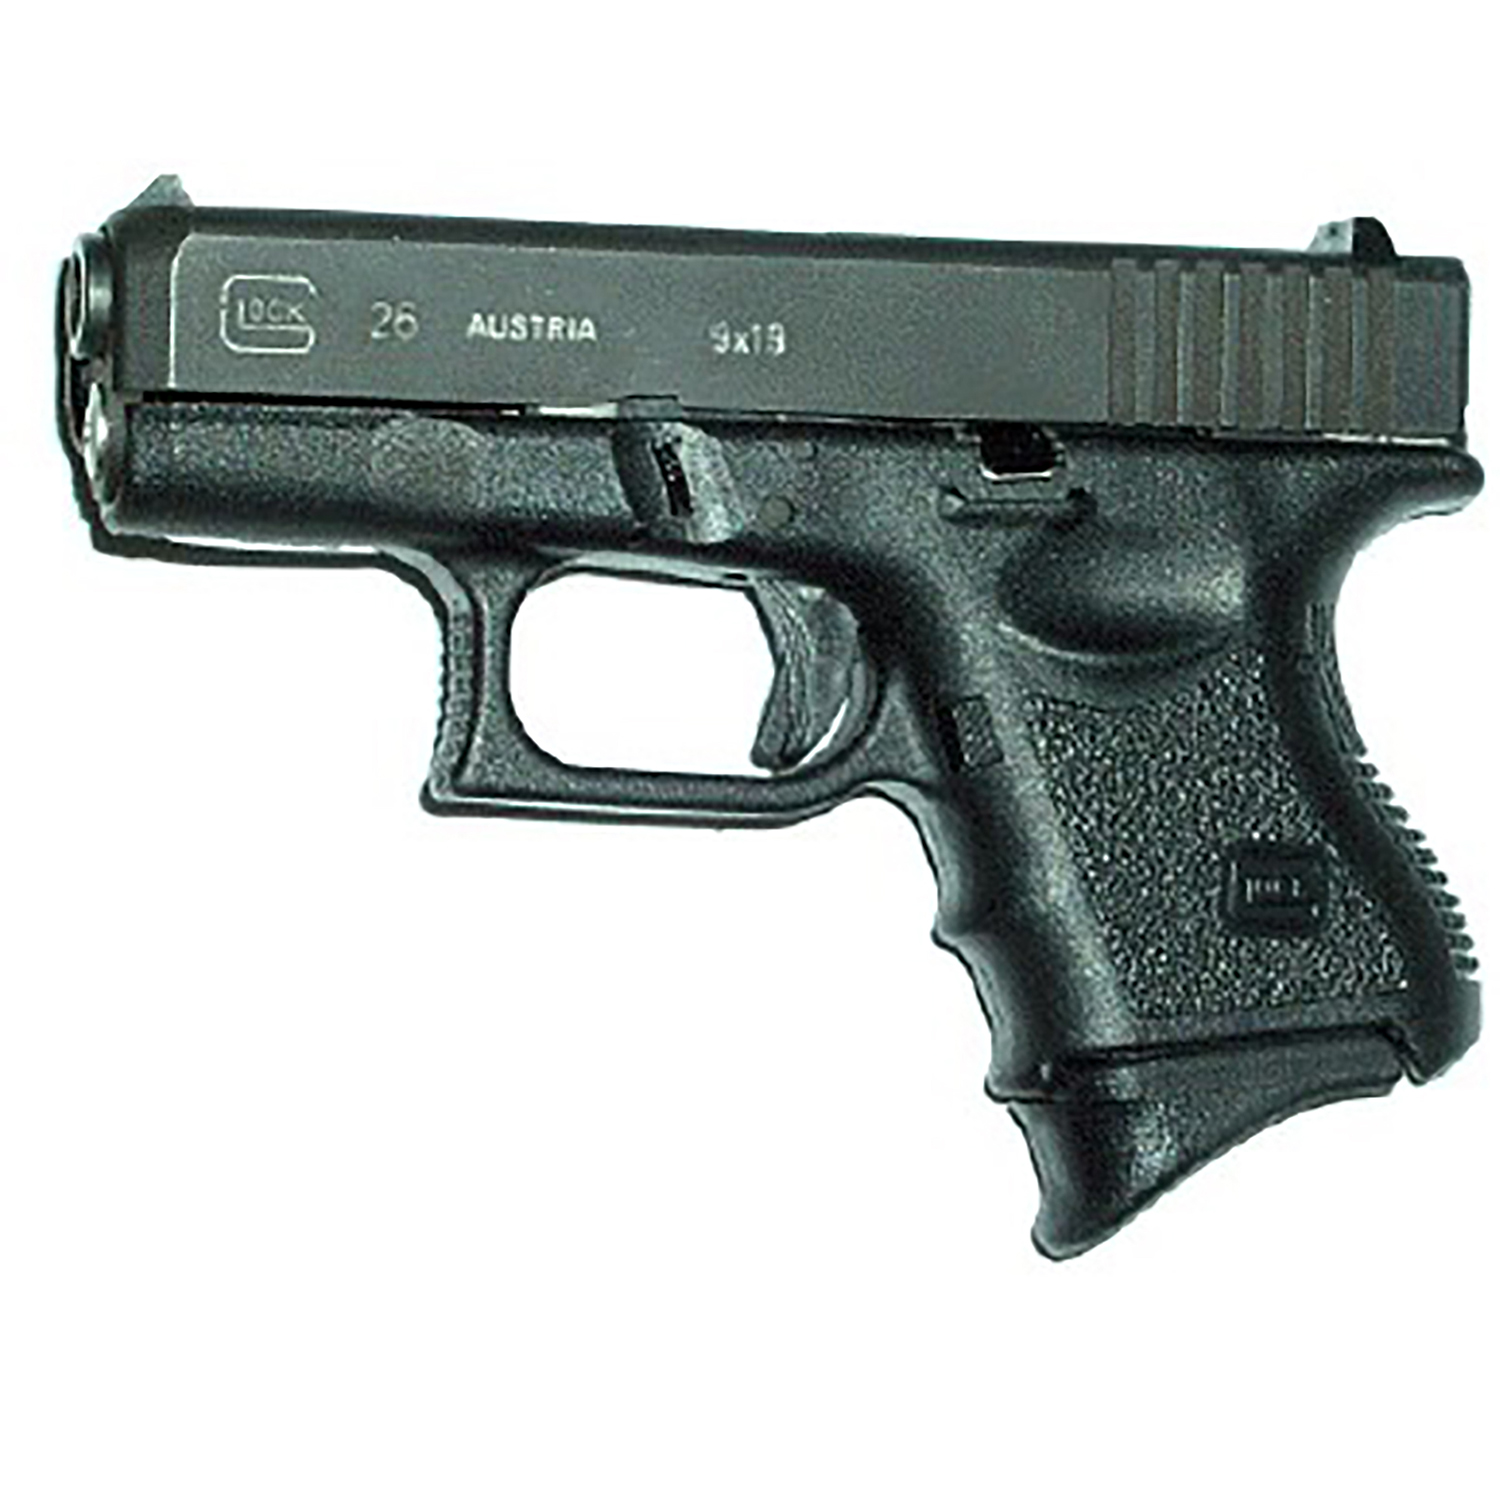 Pearce Grip Glock Model 26 27 33 39 Grip Extension